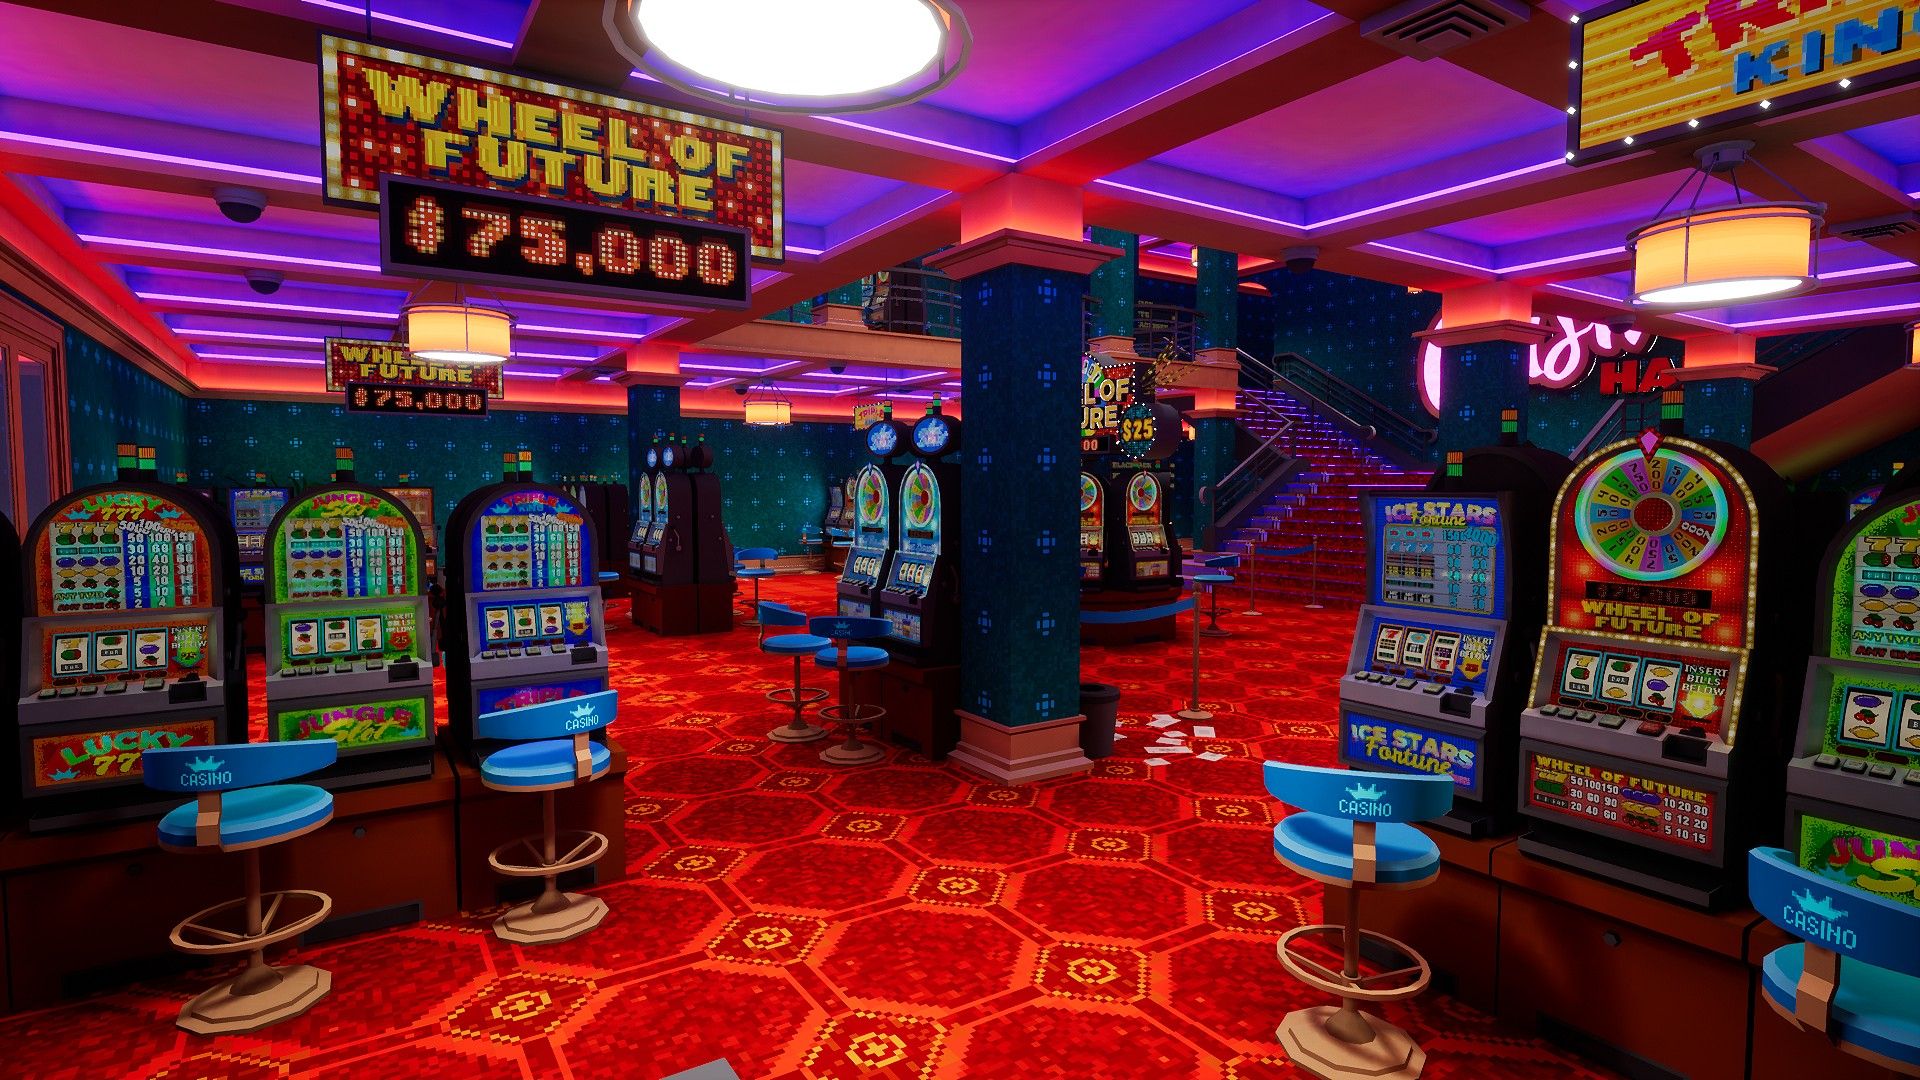 Find out what makes the online casino (คาสิโนออนไลน์) one of the most entertaining sites on the internet.